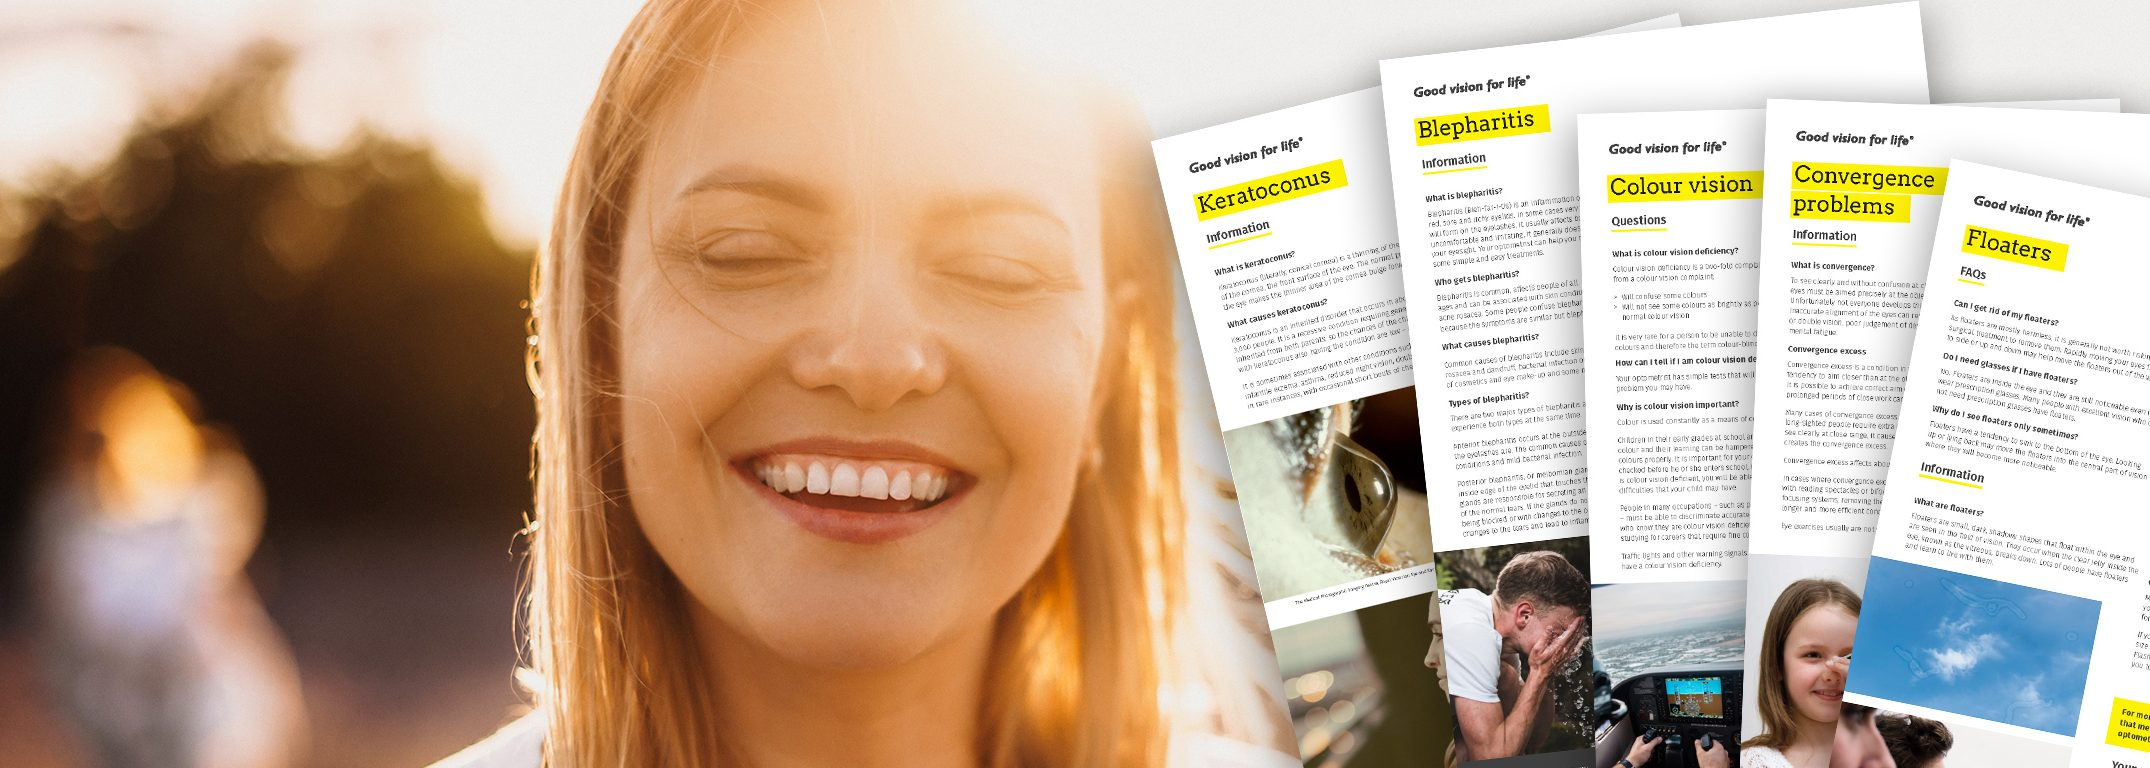 Patient brochures, forms & eye charts